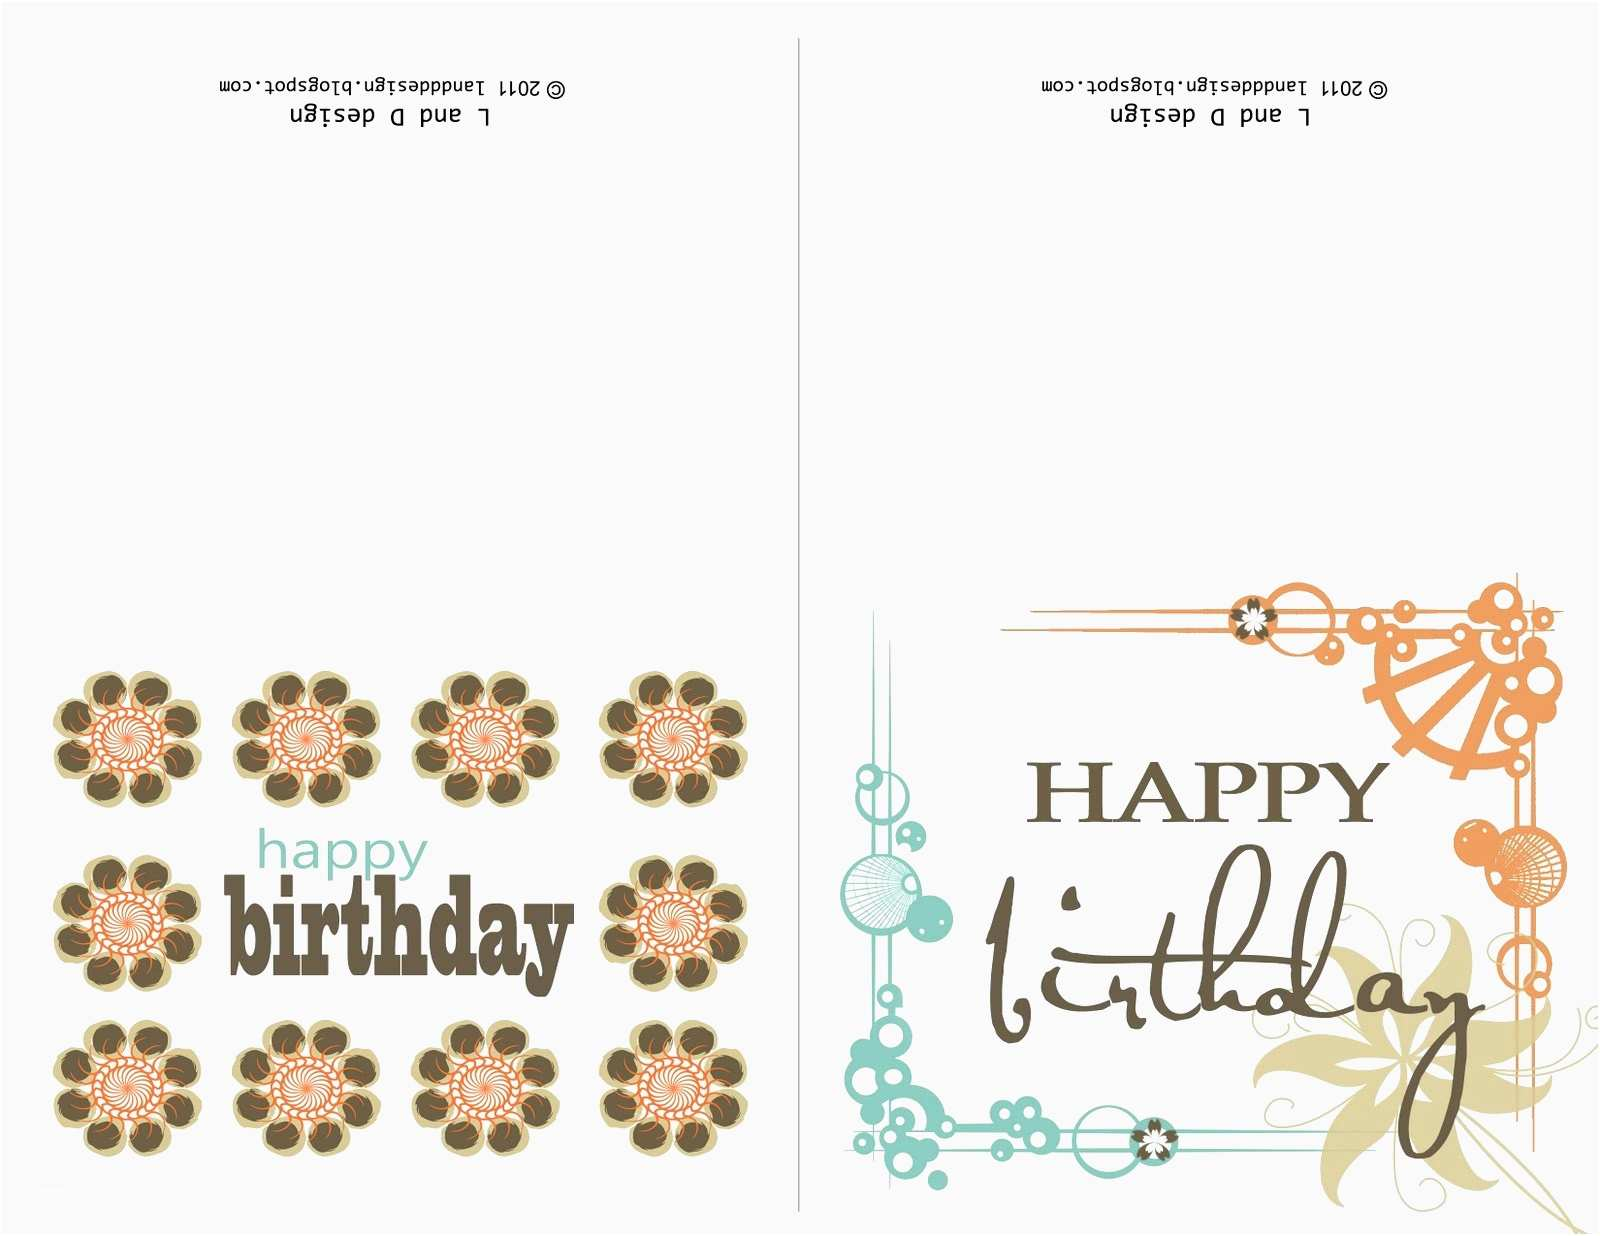 free printable birthday cards for mom and grandma ; free-printable-birthday-cards-for-him-awesome-birthday-cards-mom-elegant-beautiful-printable-birthday-cards-for-of-free-printable-birthday-cards-for-him